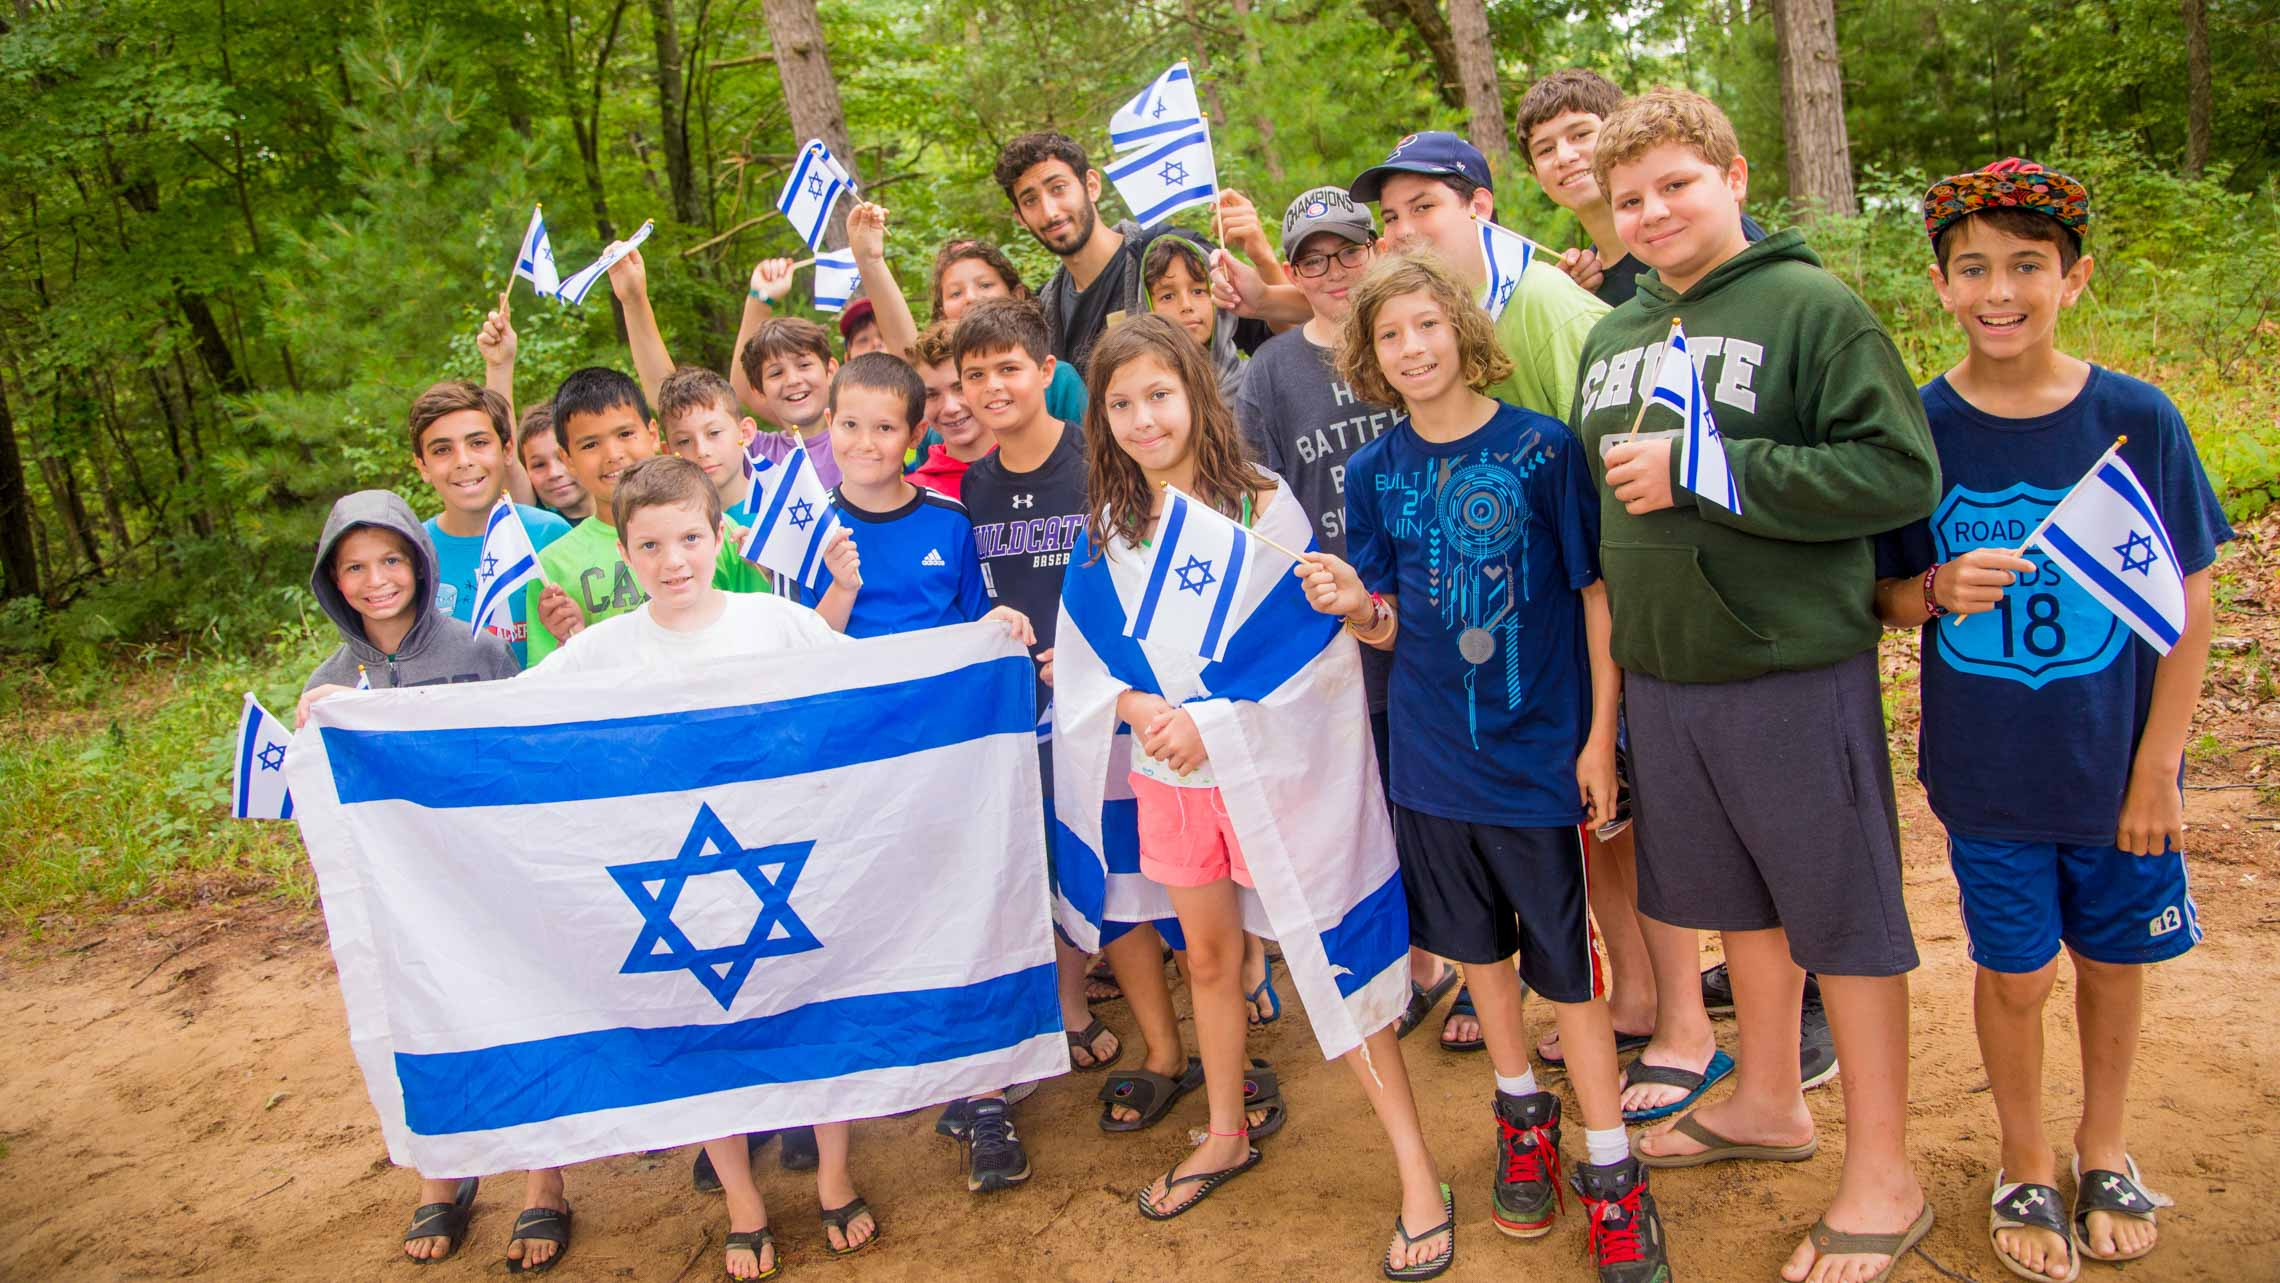 Group of campers with Israeli flags